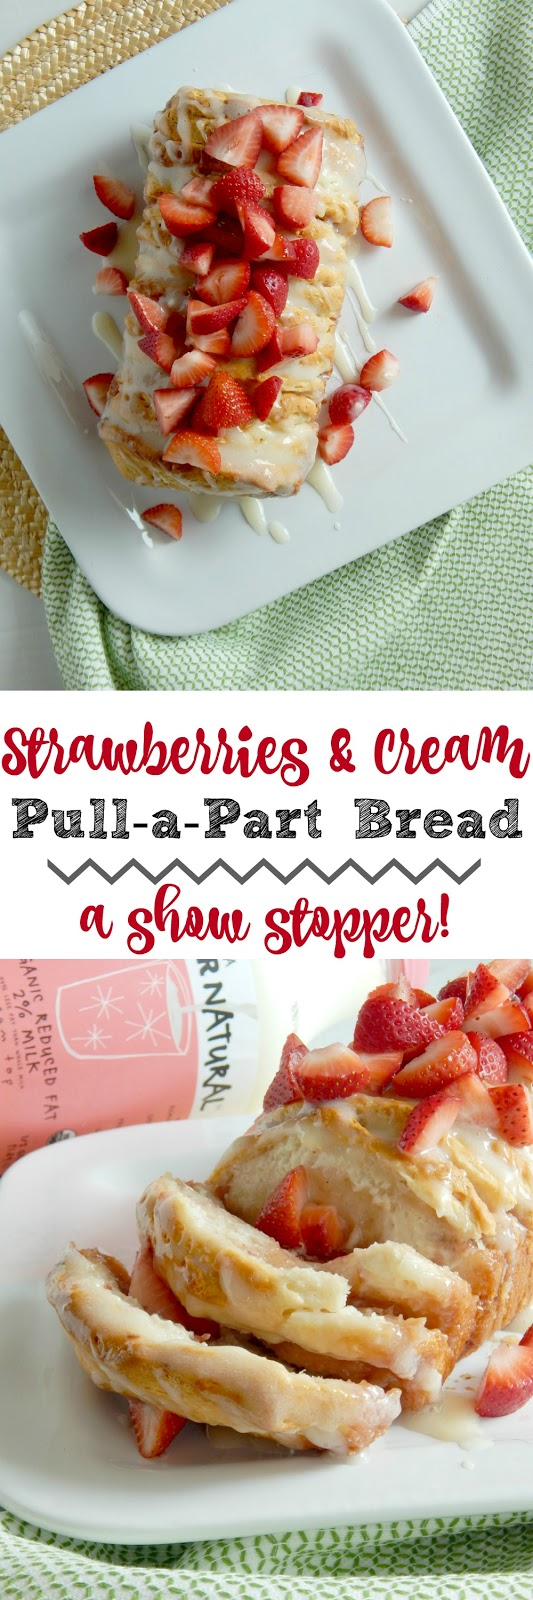 Strawberries & Cream Pull-a-Part Bread...a delicious breakfast treat!  Tender, flaky biscuits layered with cream cheese and strawberry jam, then drizzled with thick icing and topped with fresh strawberries!  Ideal for brunches, weekend breakfasts and party desserts.  Sponsored by Kalona SuperNatural. (sweetandsavoryfood.com)